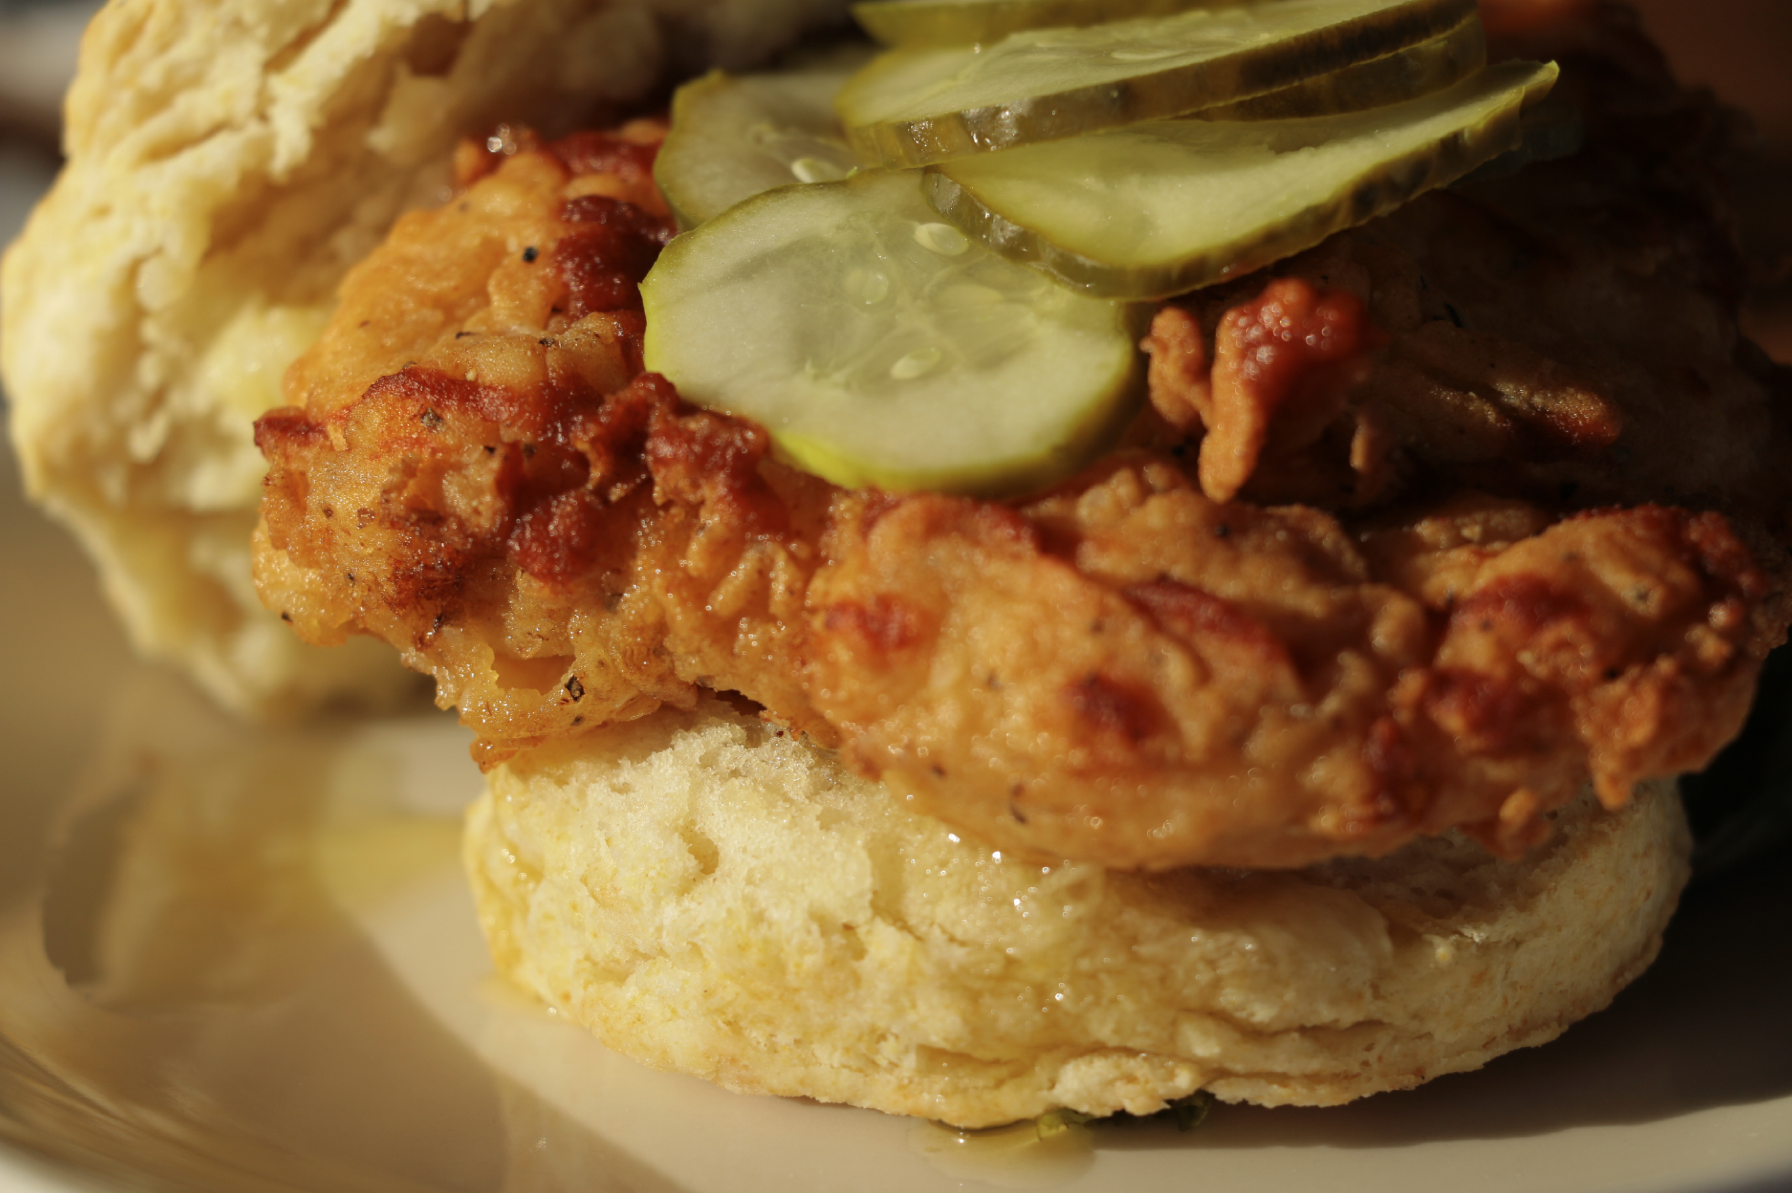 Ace's Fried Chicken & Biscuit